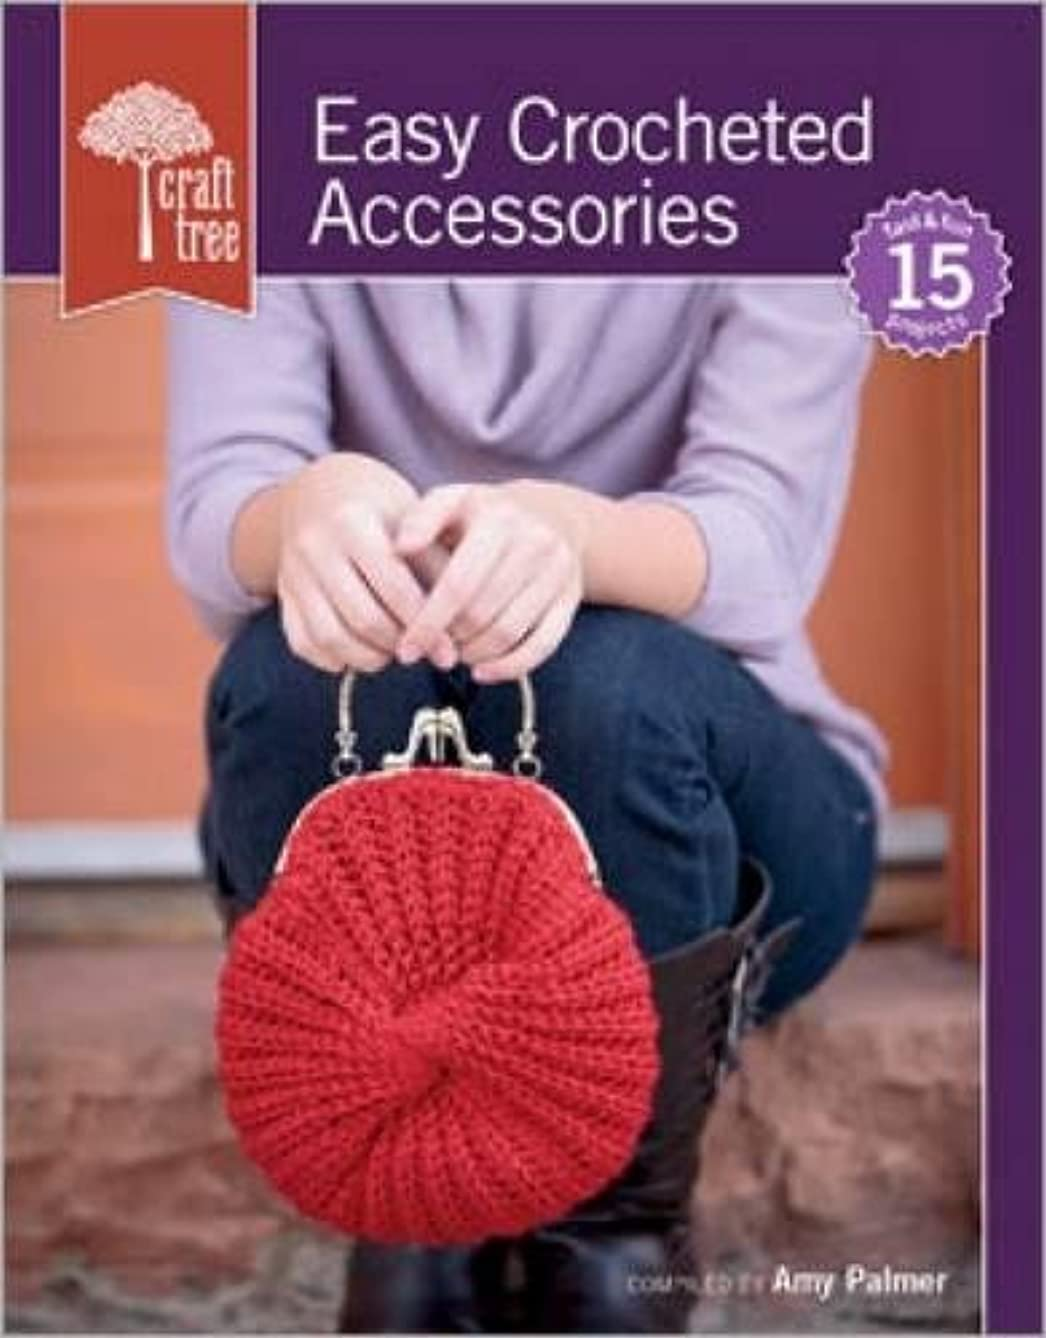 Craft Tree Easy Crocheted Accessories